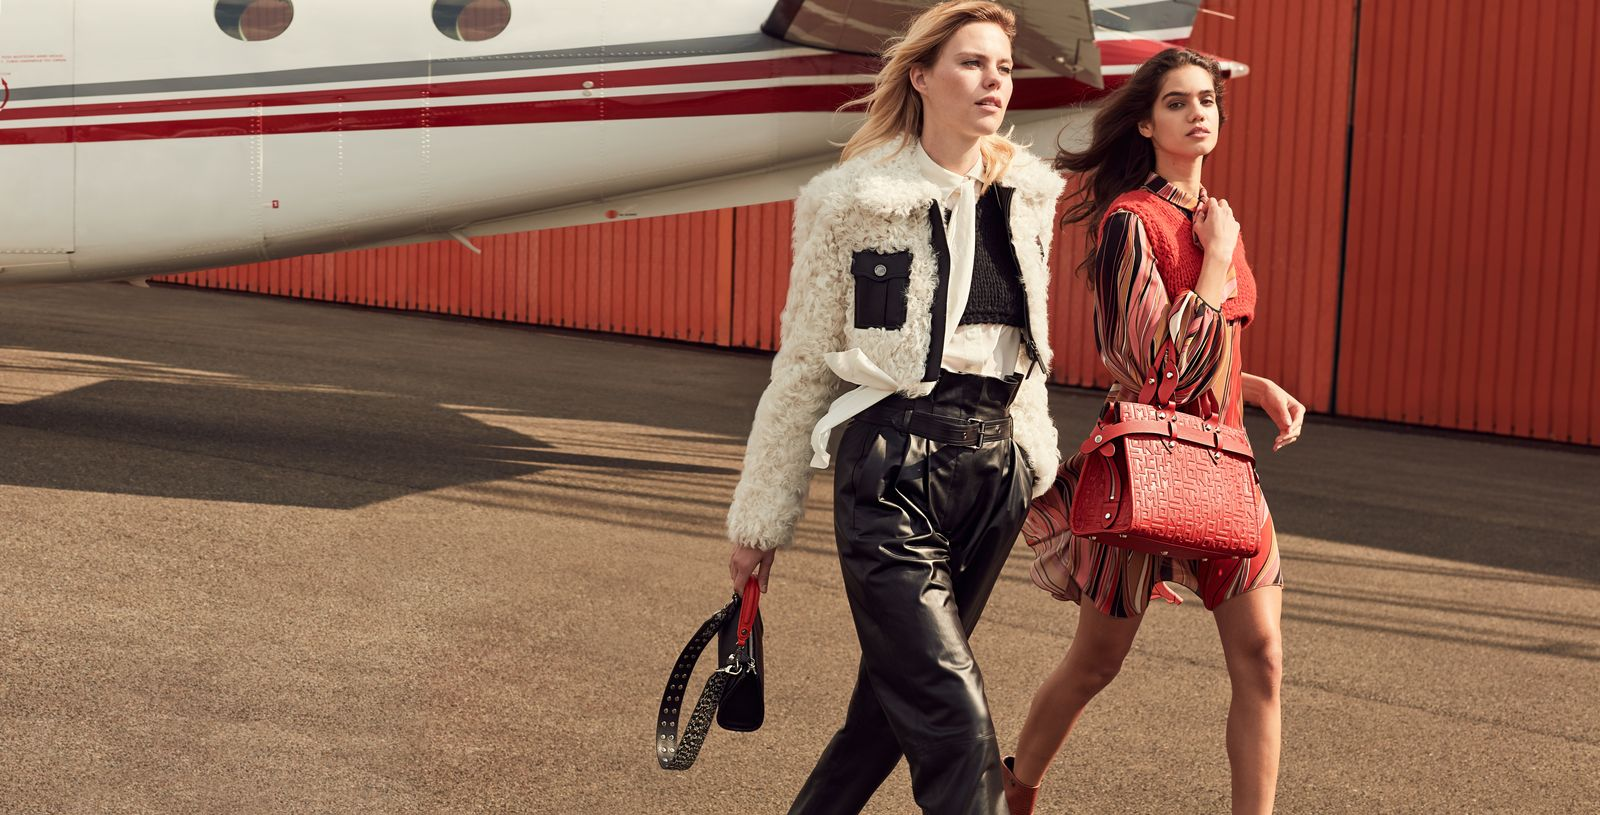 Jet set in style with Longchamp's Fall/Winter 2019 collection